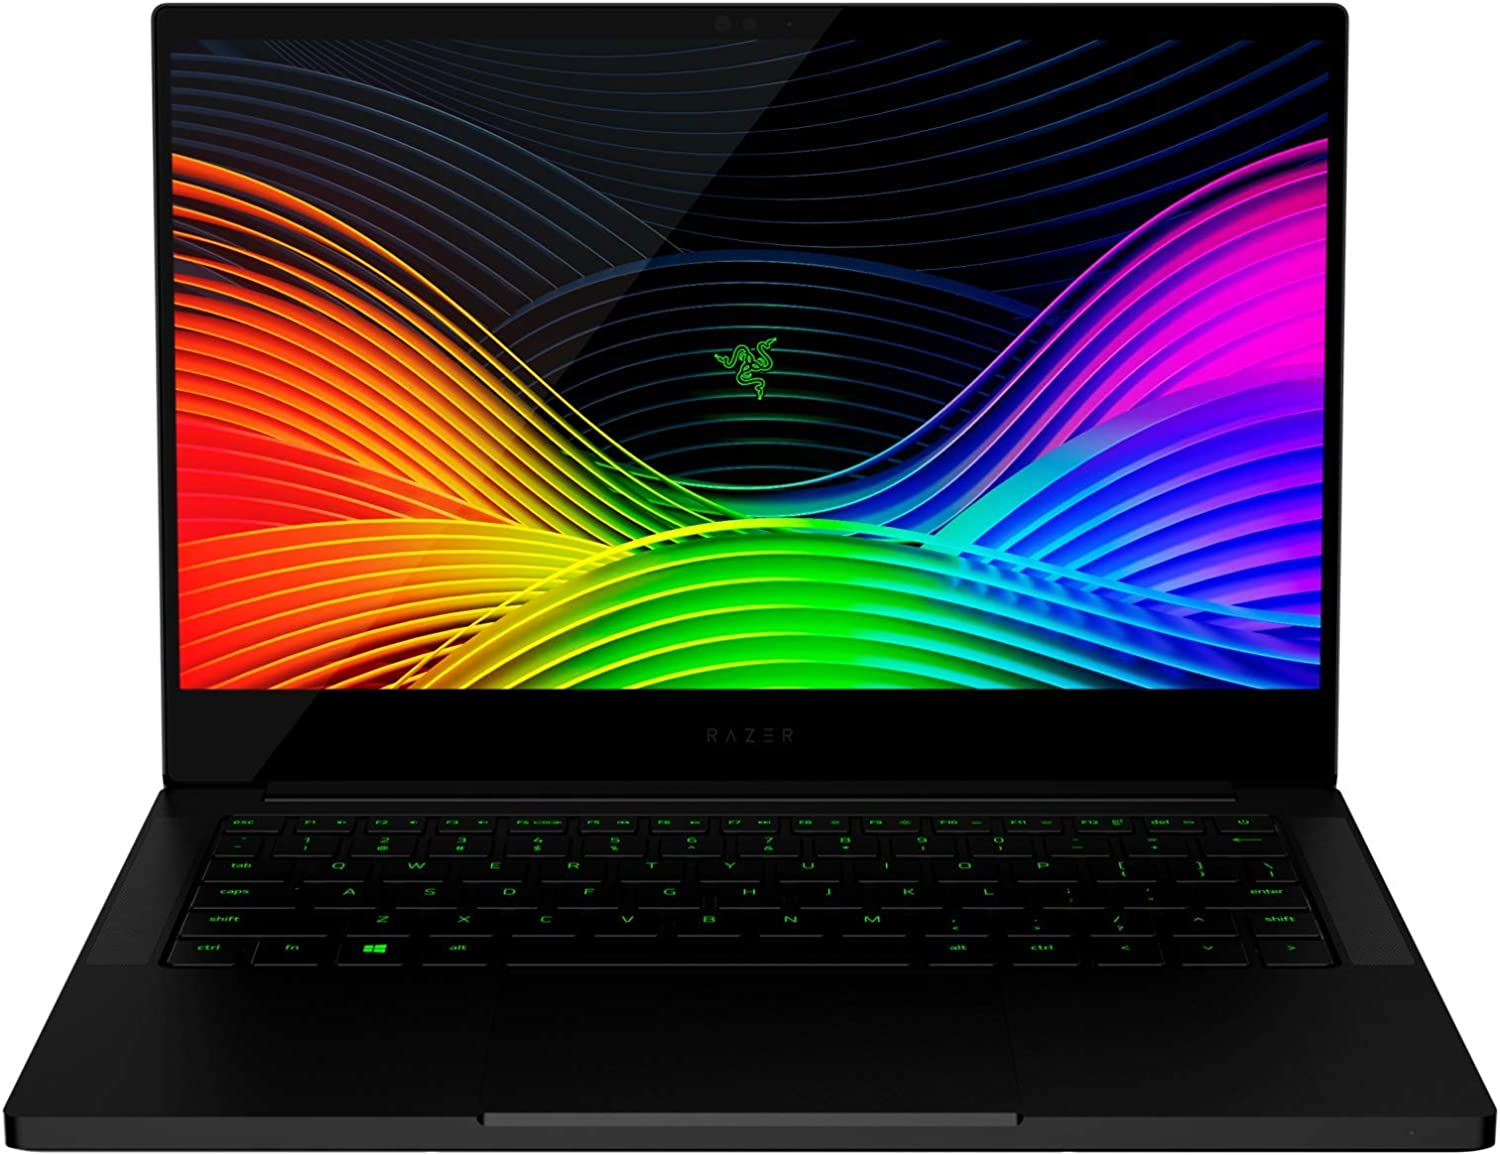 "Razer Blade Stealth 13 Ultrabook Gaming Laptop: Intel Core i7-1065G7 4 Core, NVIDIA GeForce GTX 1650 Max-Q, 13.3"" UHD 4K 60Hz, 16GB RAM, 512GB SSD, CNC Aluminum, Chroma RGB, Thunderbolt 3, Black"